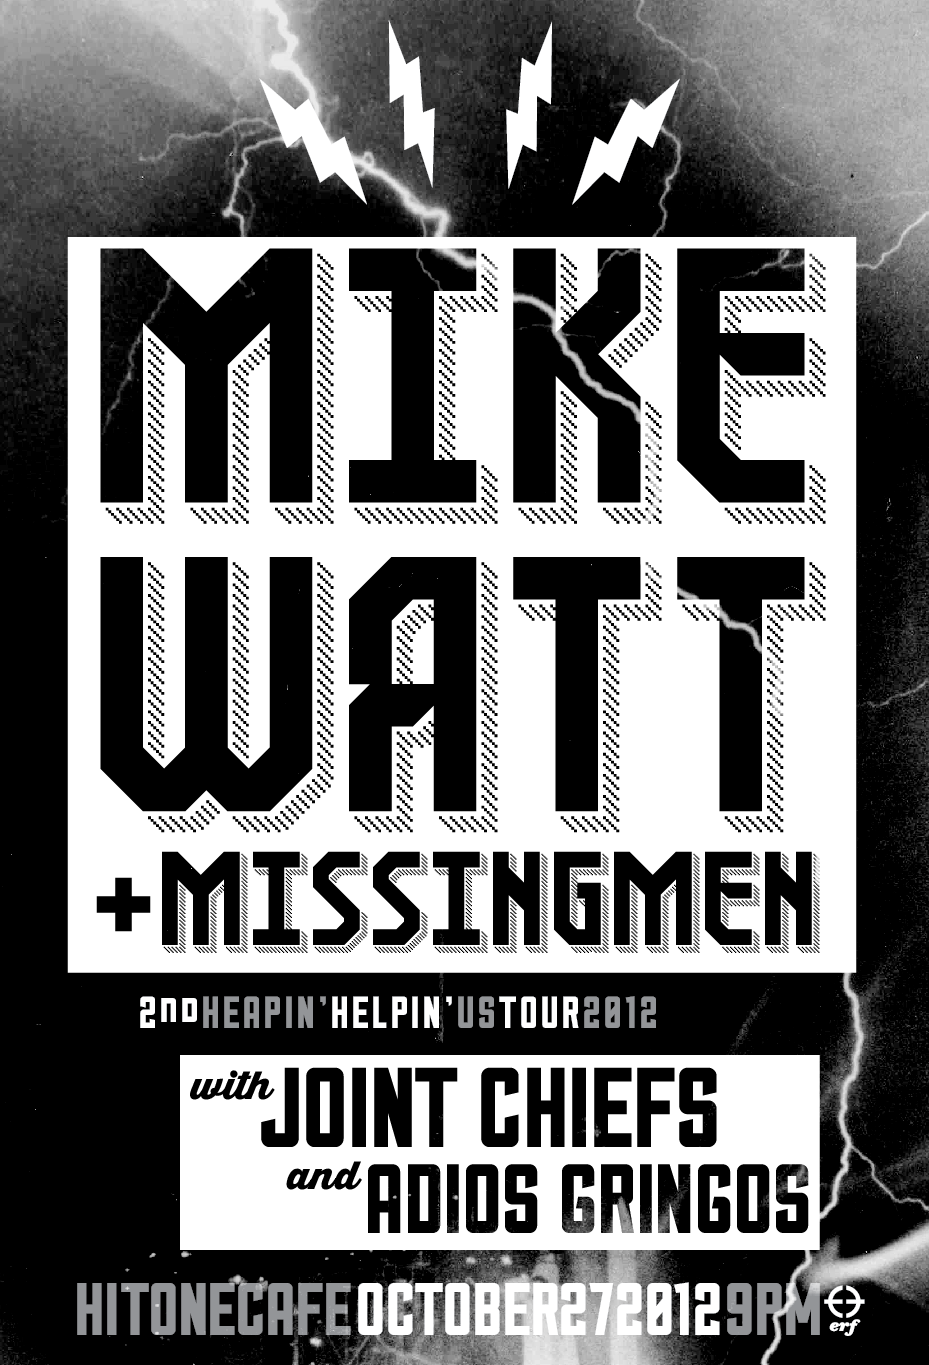 Poster for the Mike Watt show this month at the Hi Tone // for Erf.